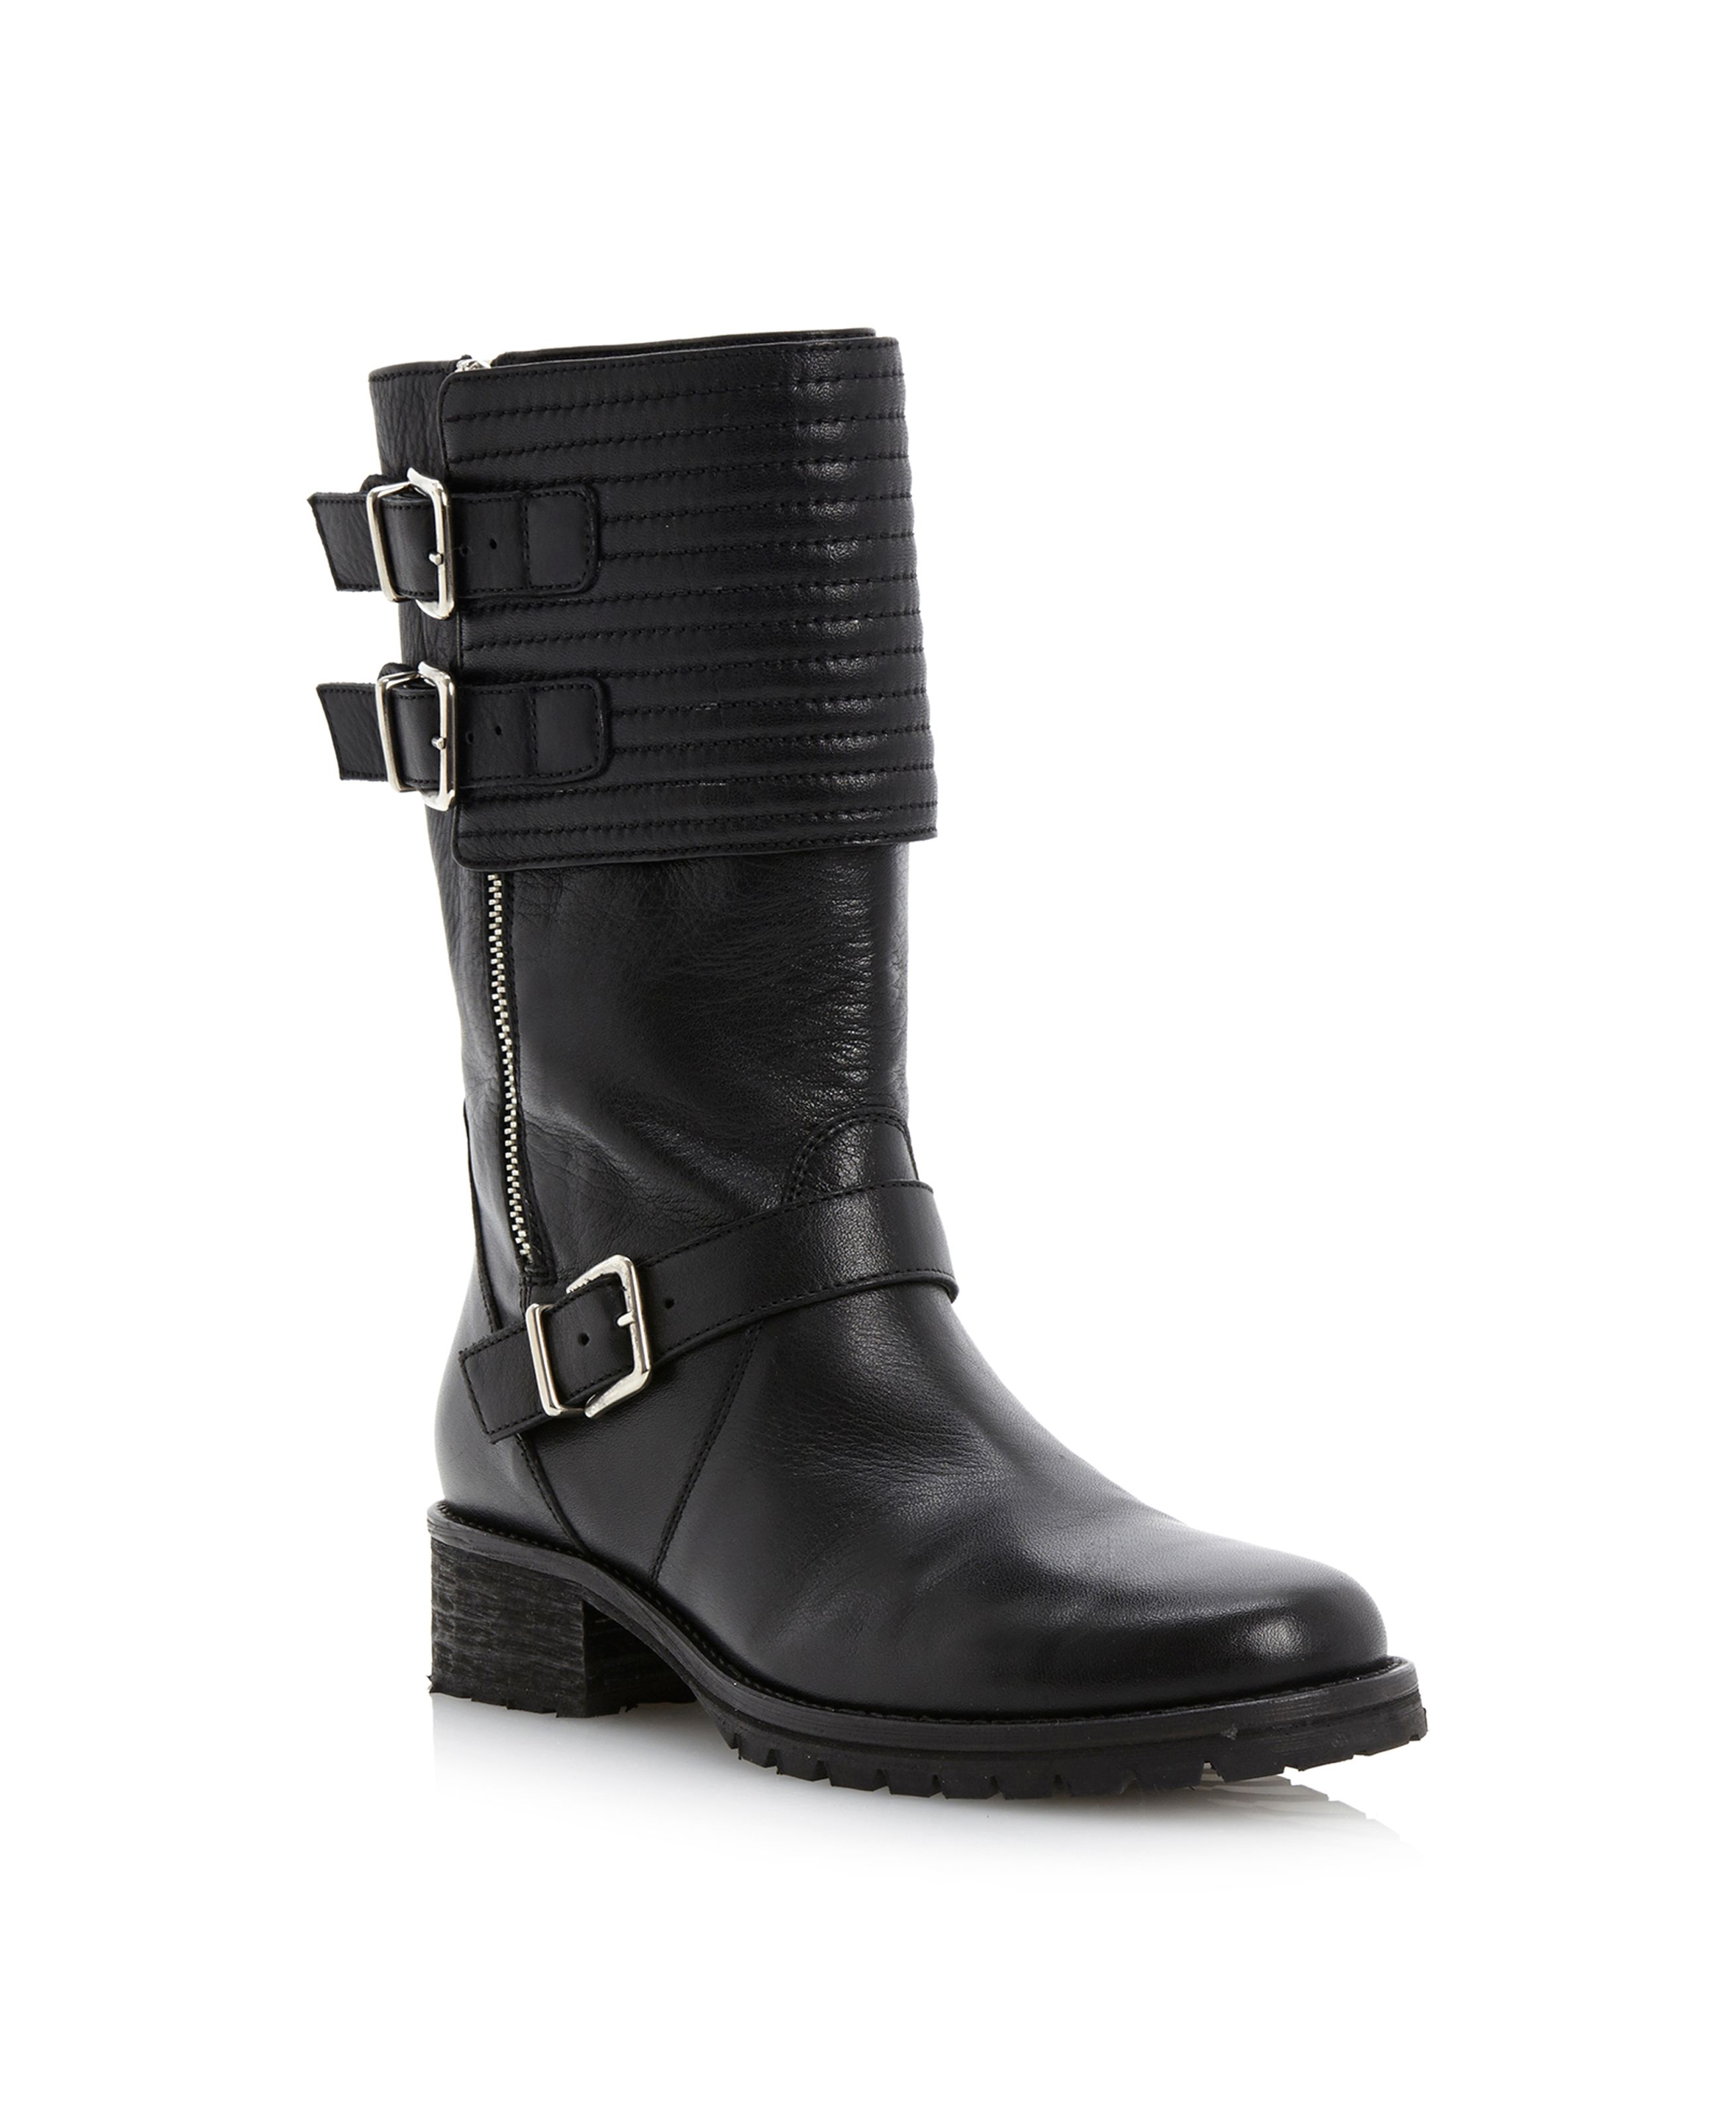 Puligop quilted biker cleated sole boots